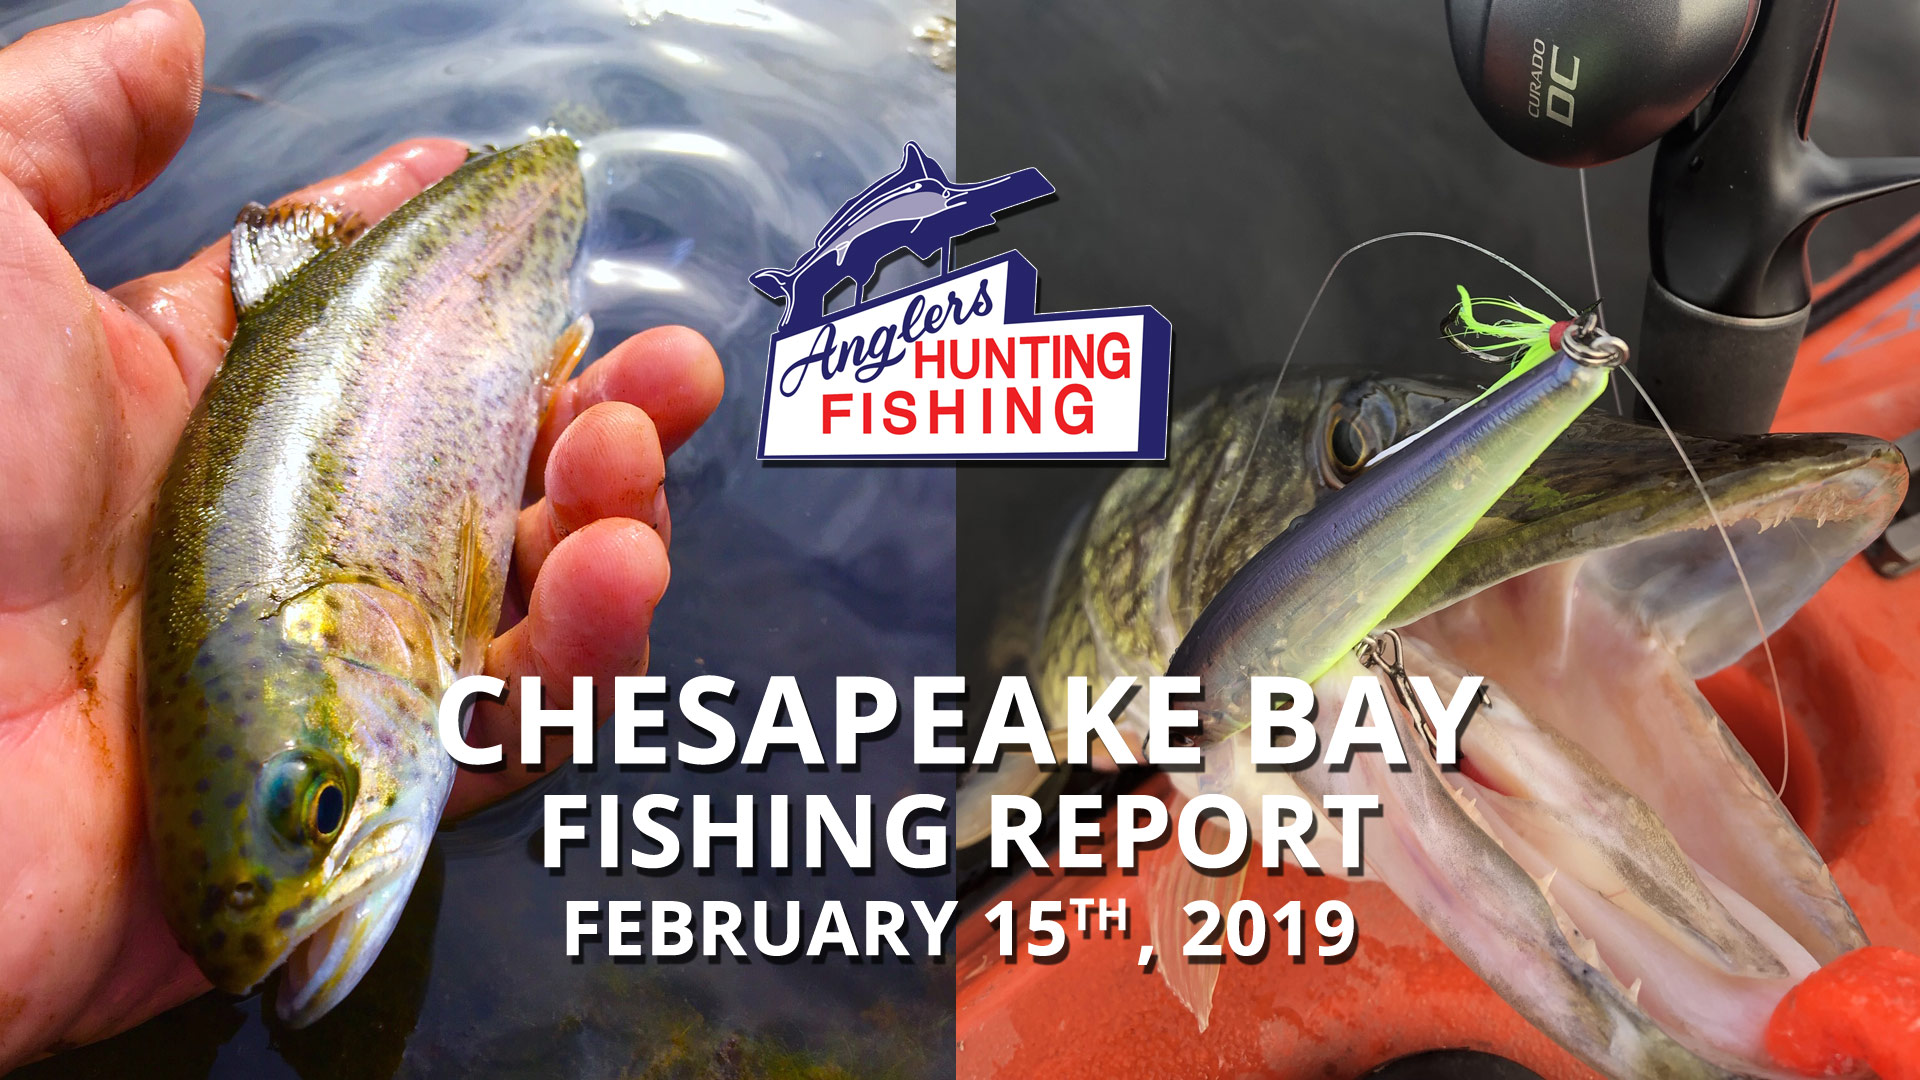 Chesapeake Bay Fishing Report - February 15th, 2019